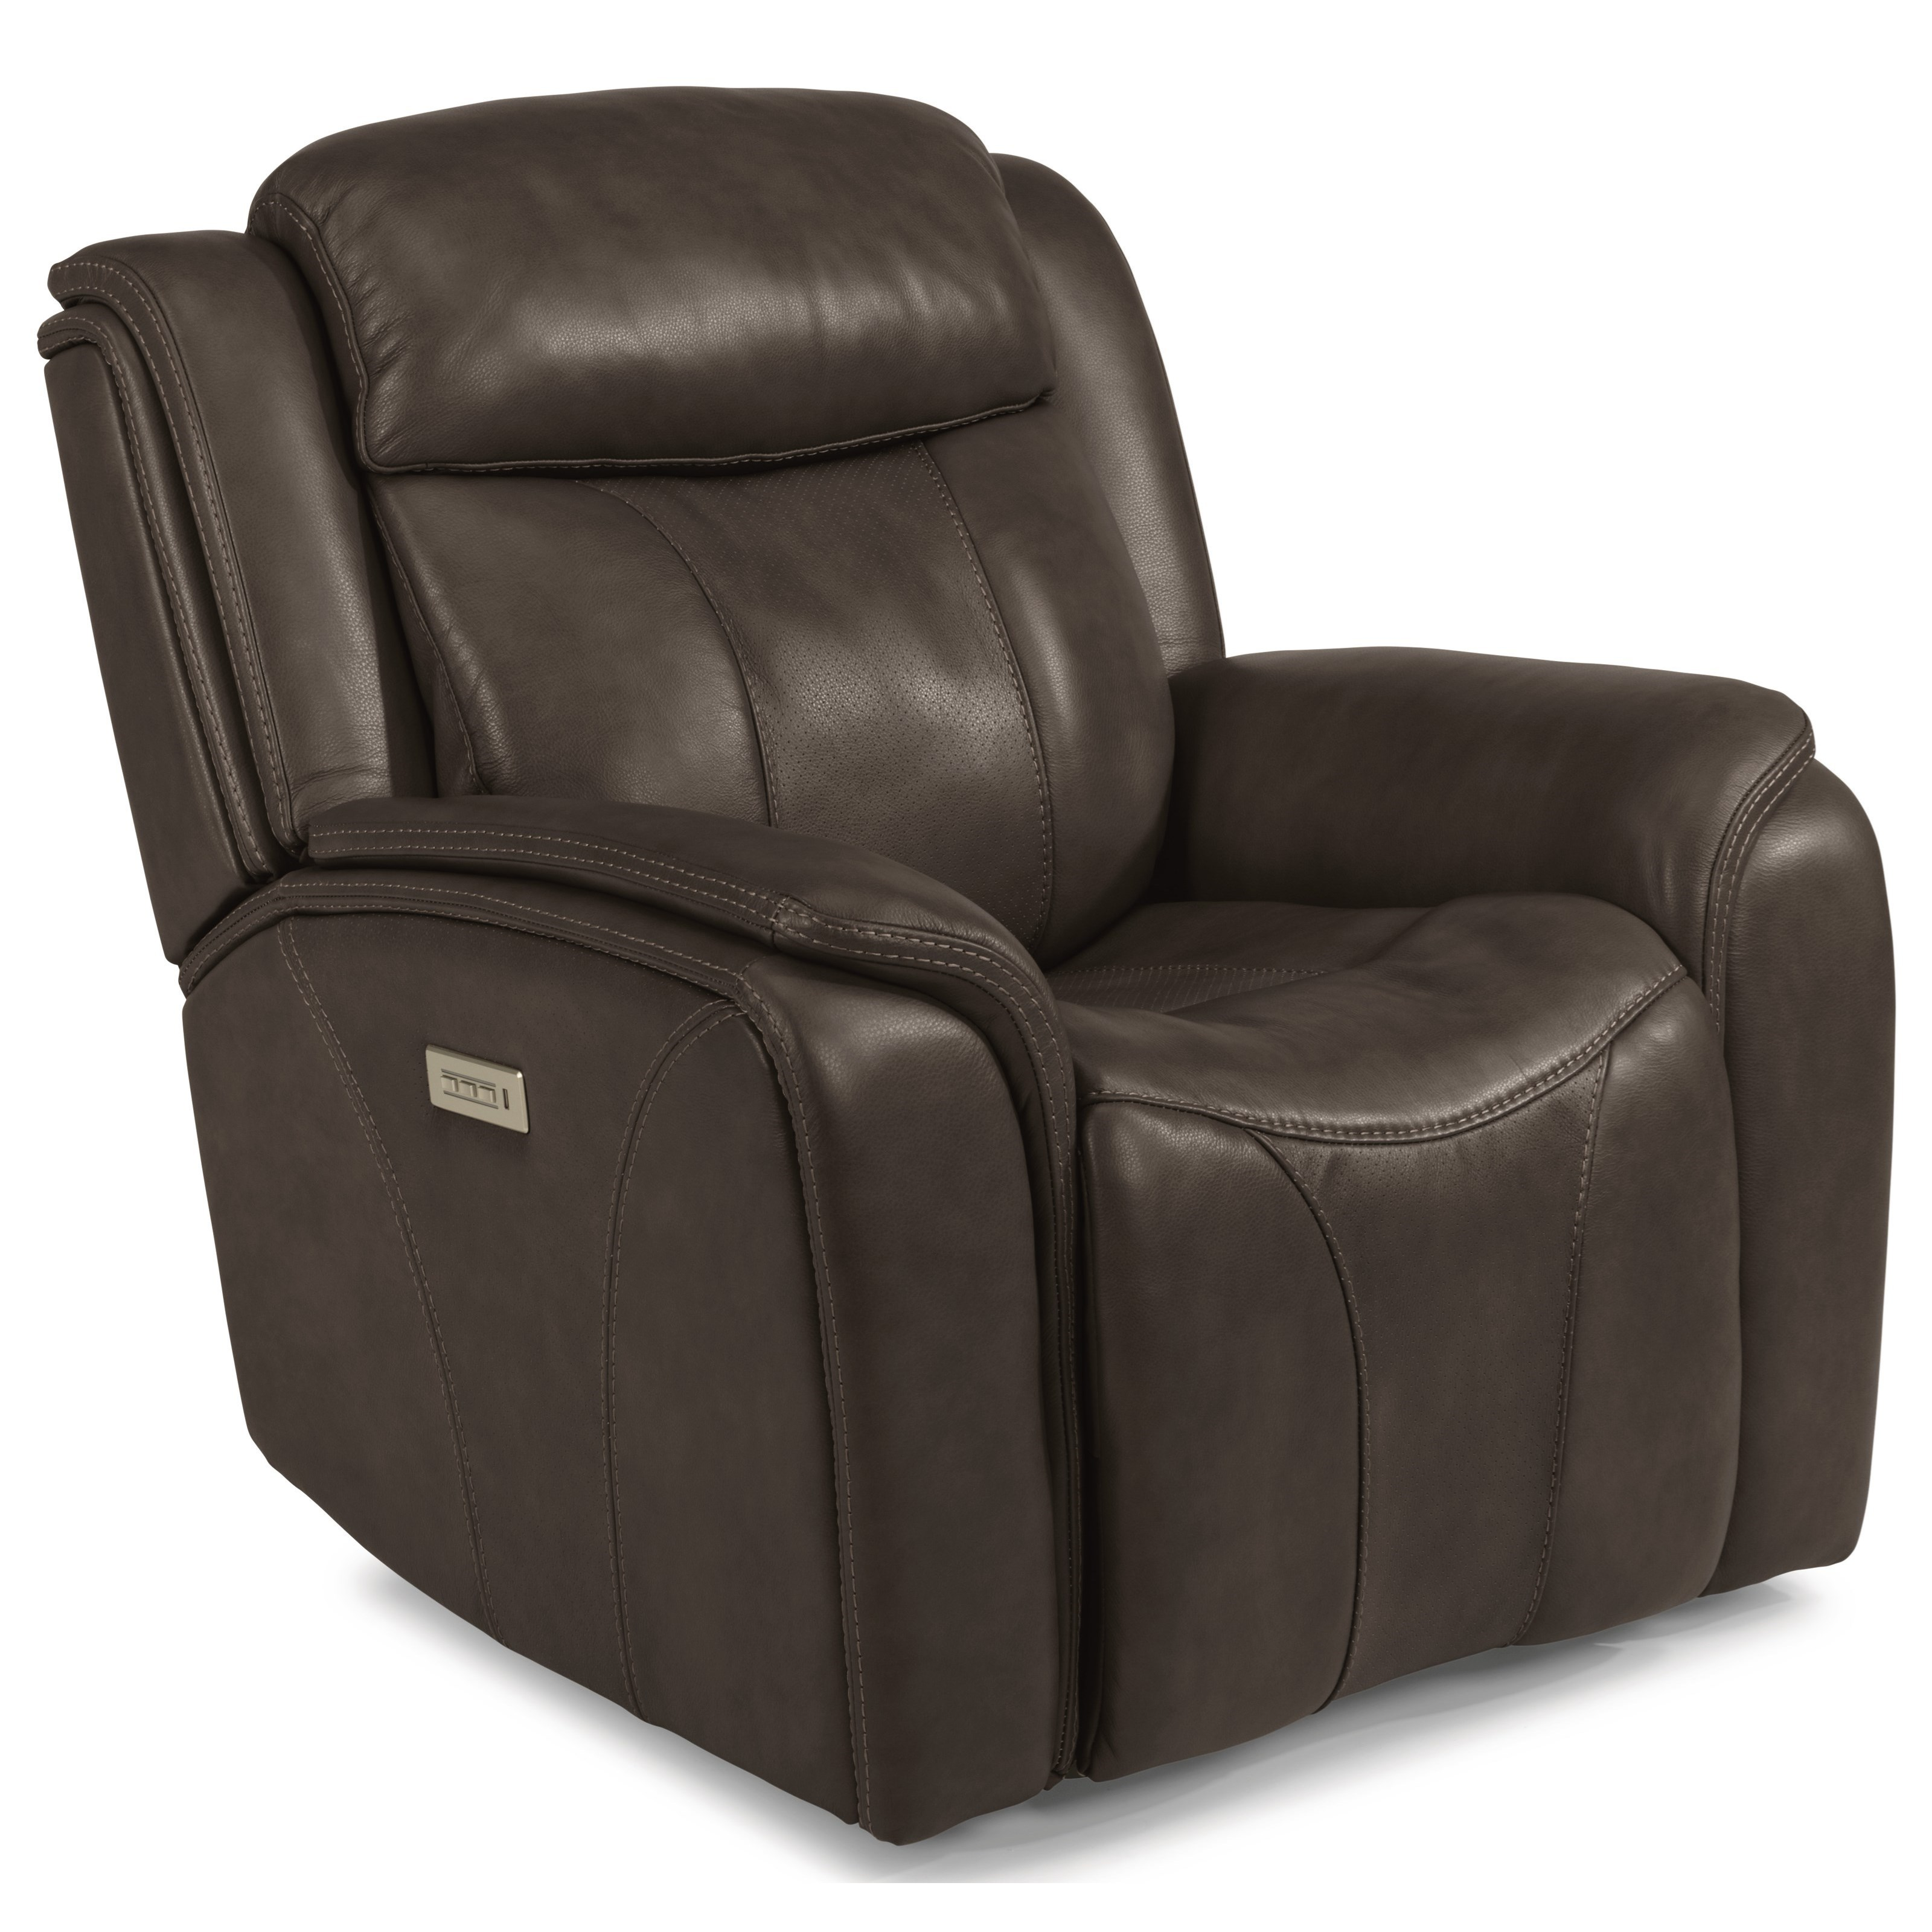 Power Recliner wih Power Headrest